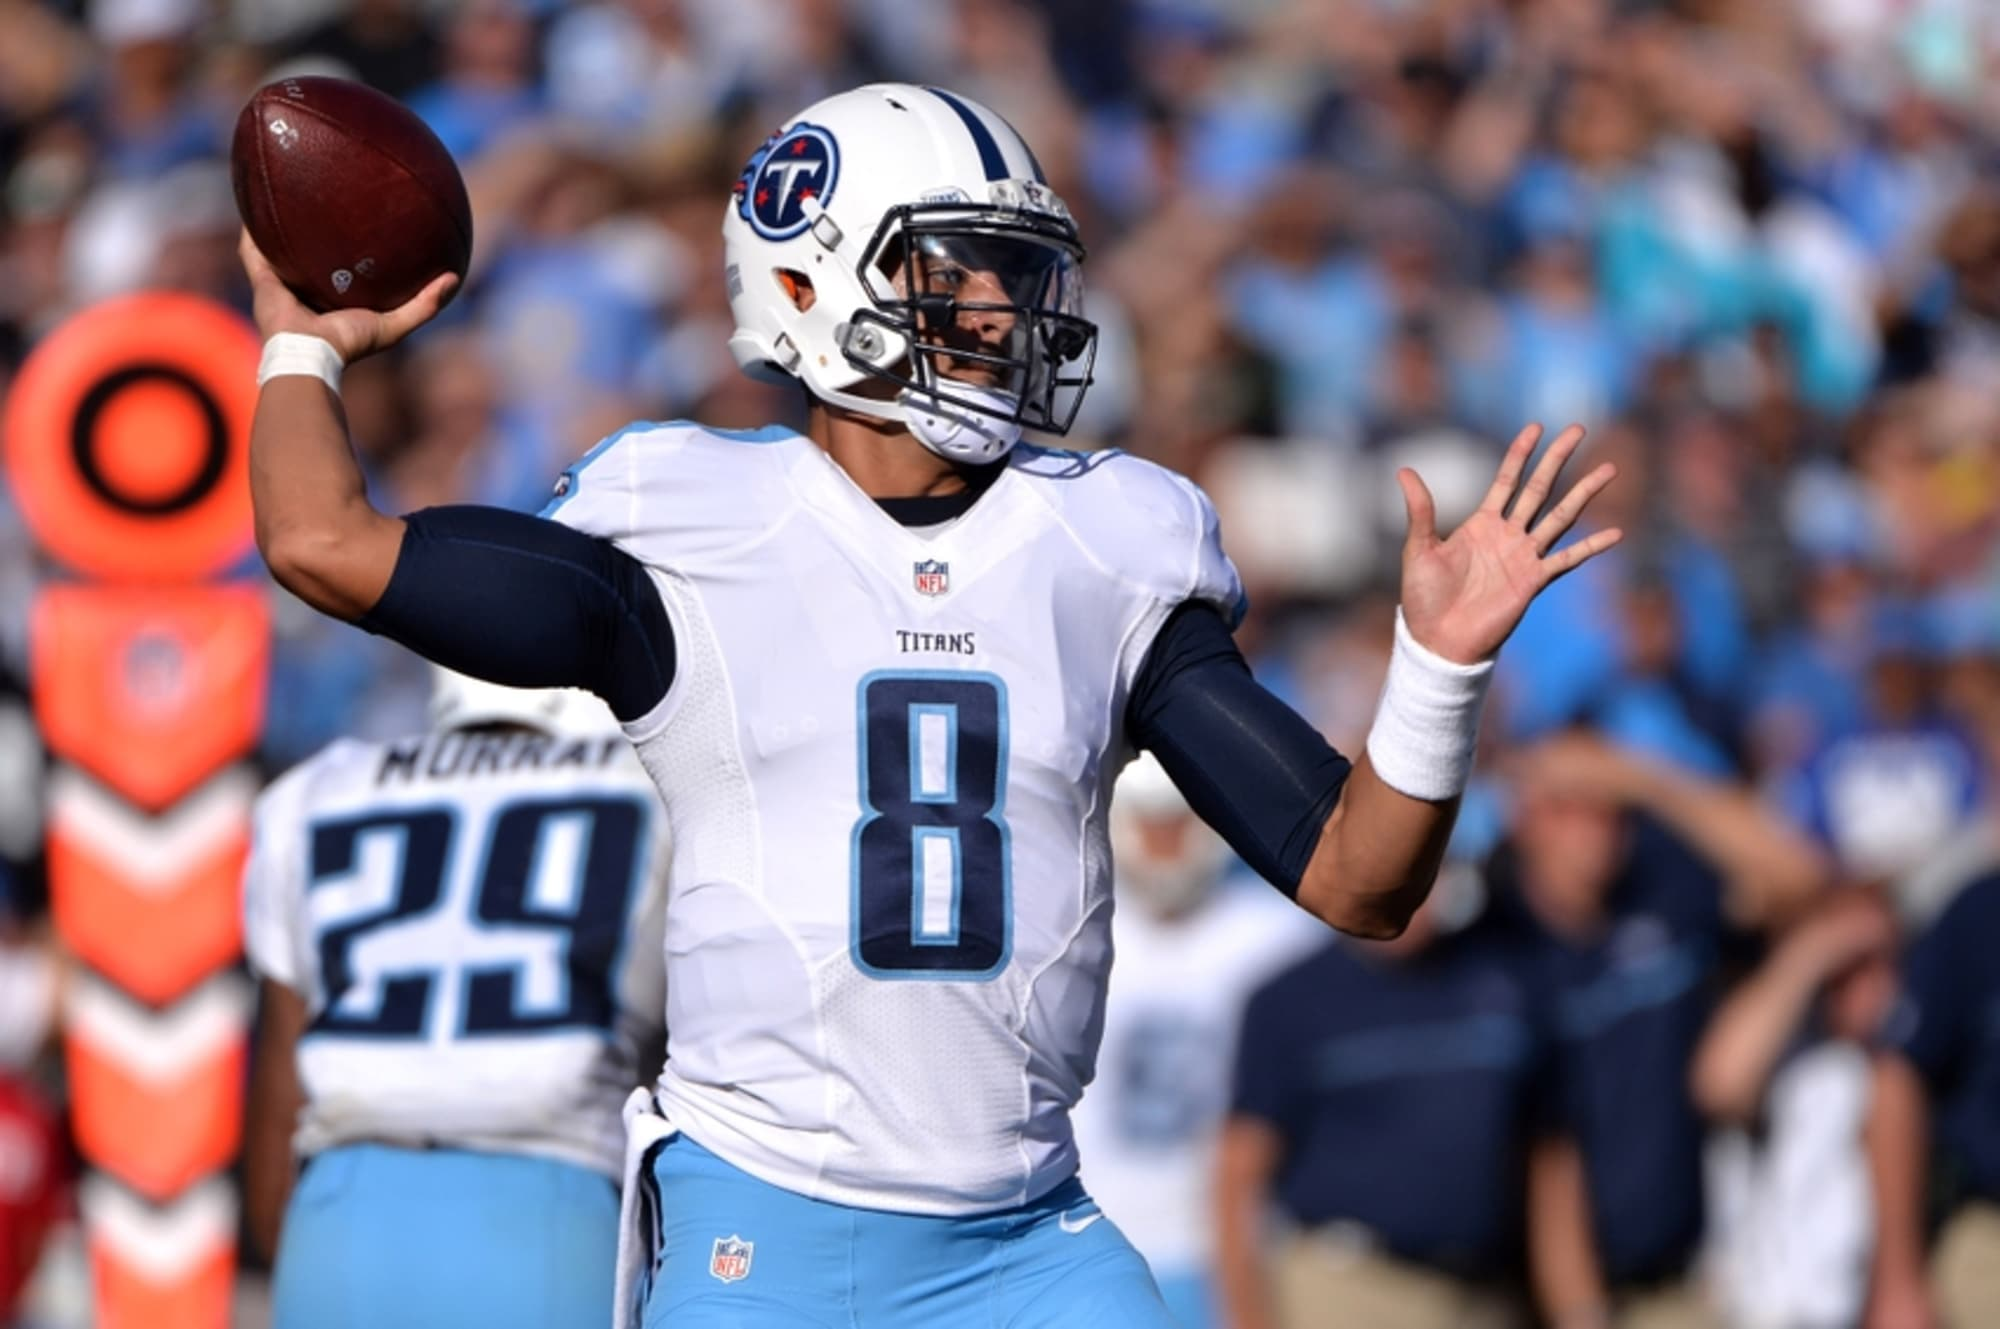 Packers Vs Titans Stopping Marcus Mariota And Other Keys To The Game